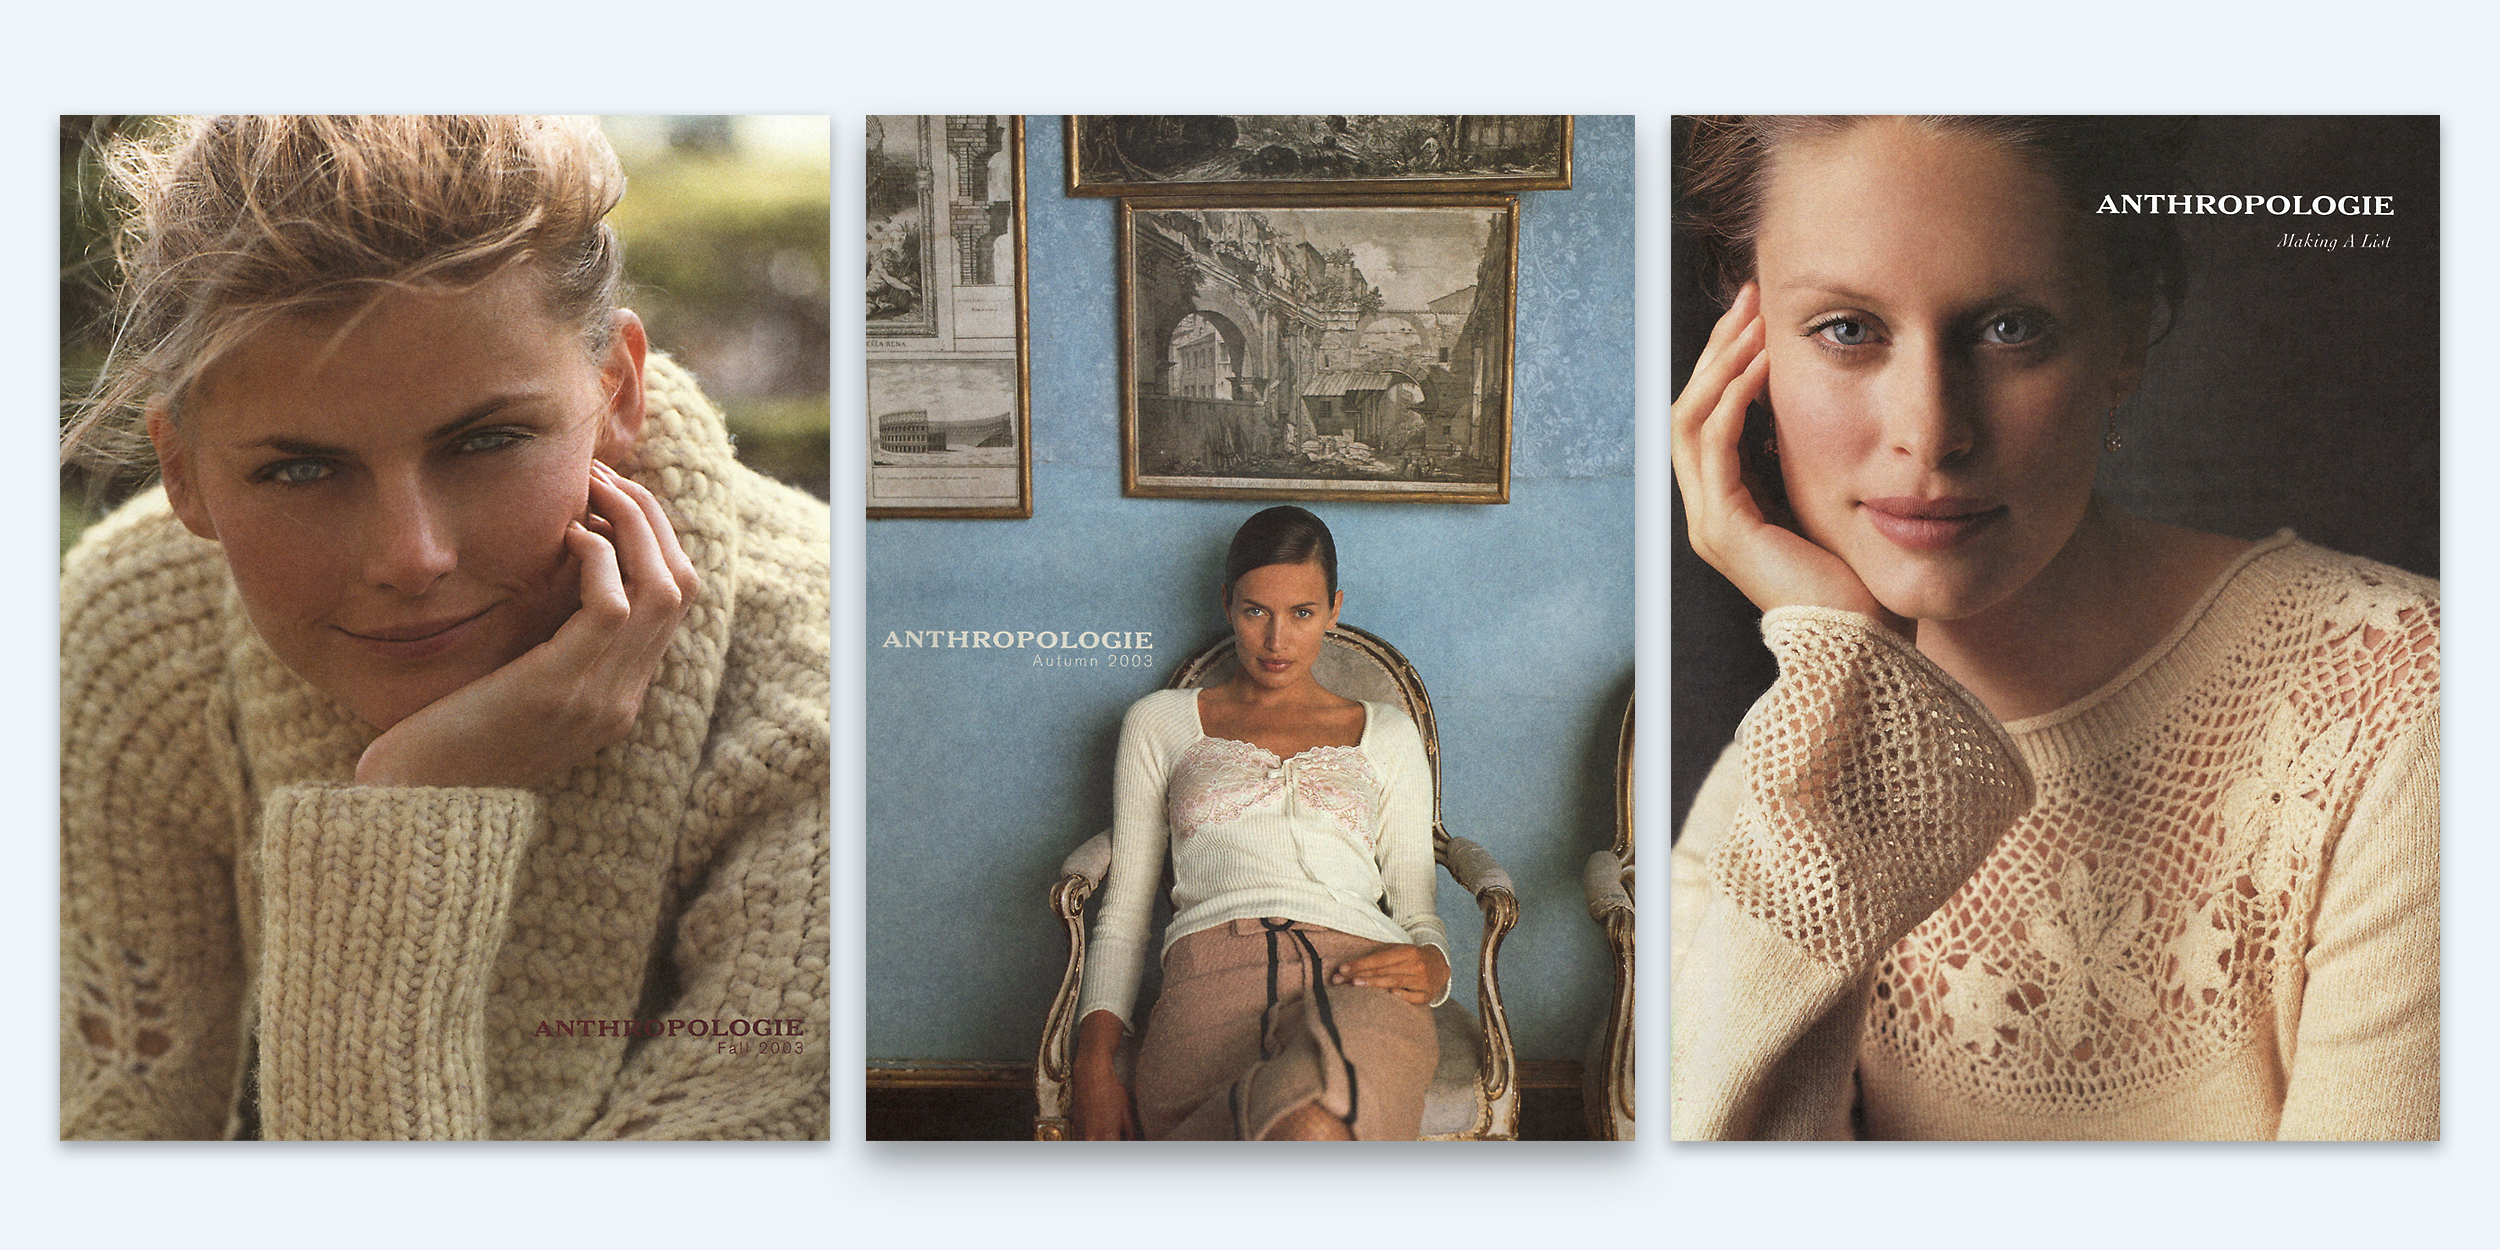 Anthropologie catalog covers